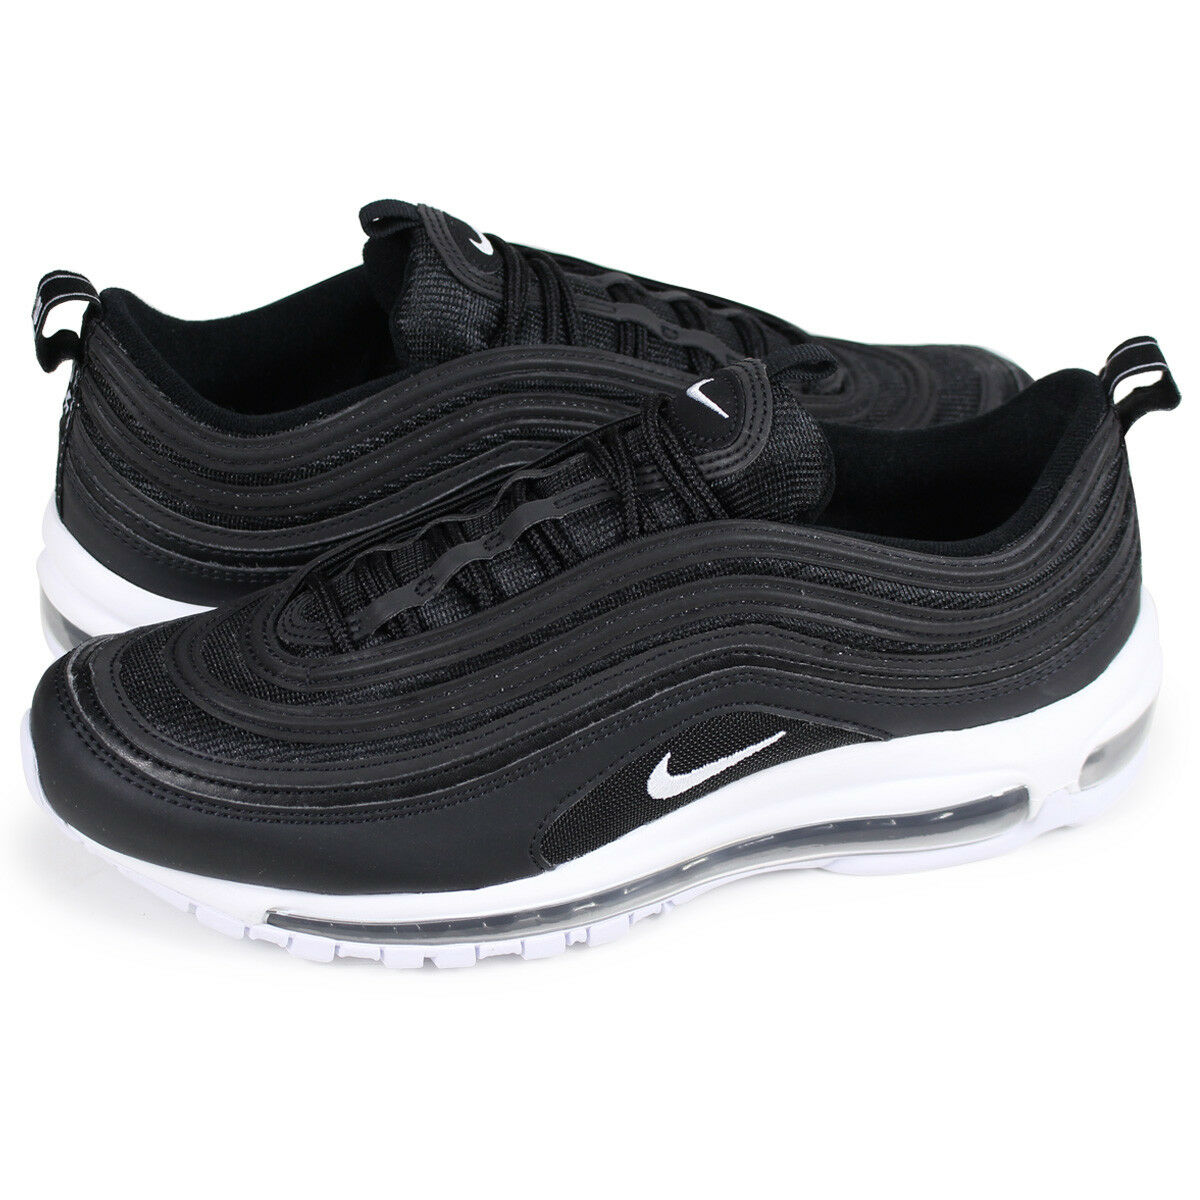 921826-001 Nike Air Max 97 OG Black White QS DS LAST SIZES RARE 100% AUTHENTIC Brand discount